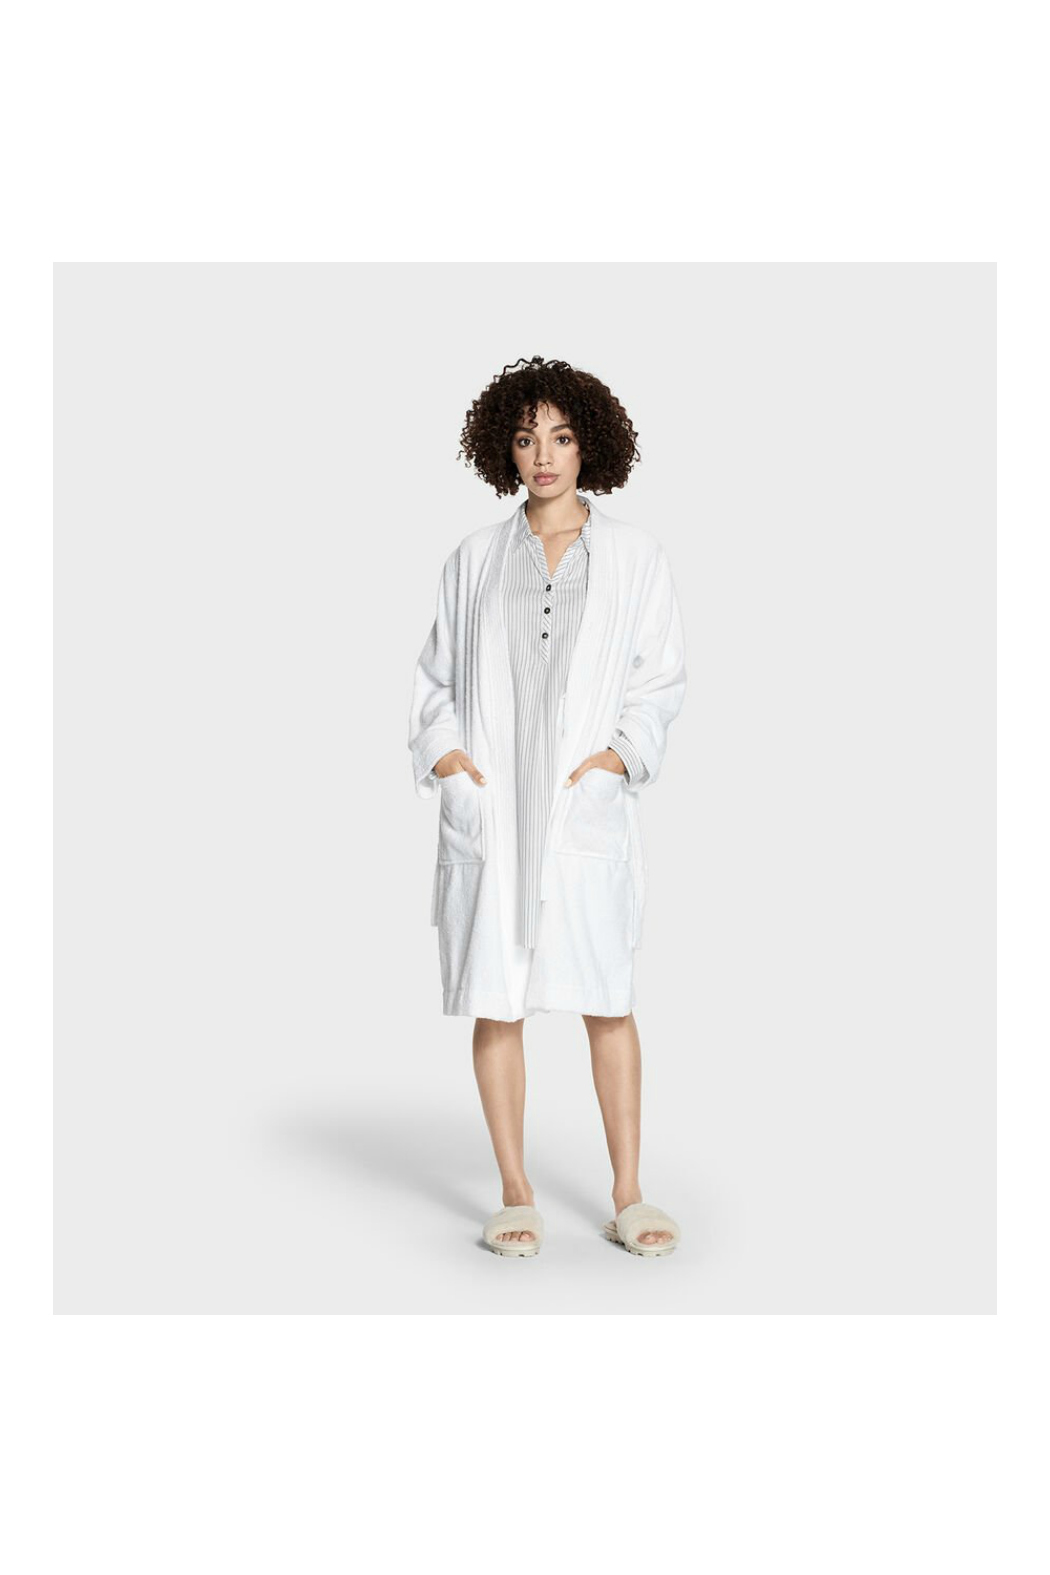 Ugg LORIE TERRY ROBE - Front Full Image